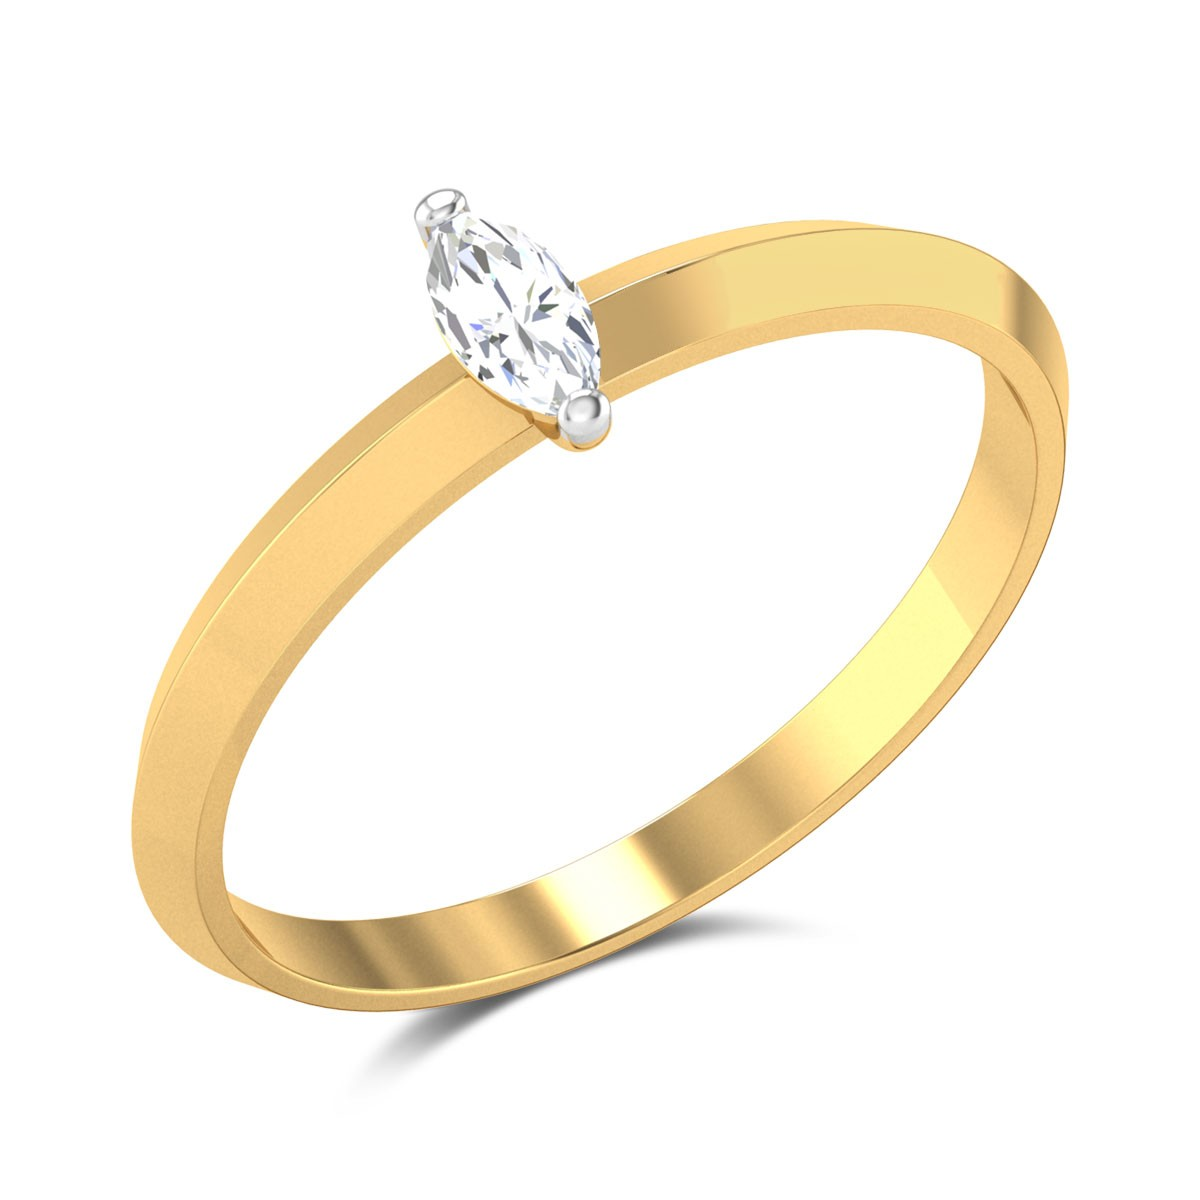 Gianina Marquise Cut Solitaire Ring